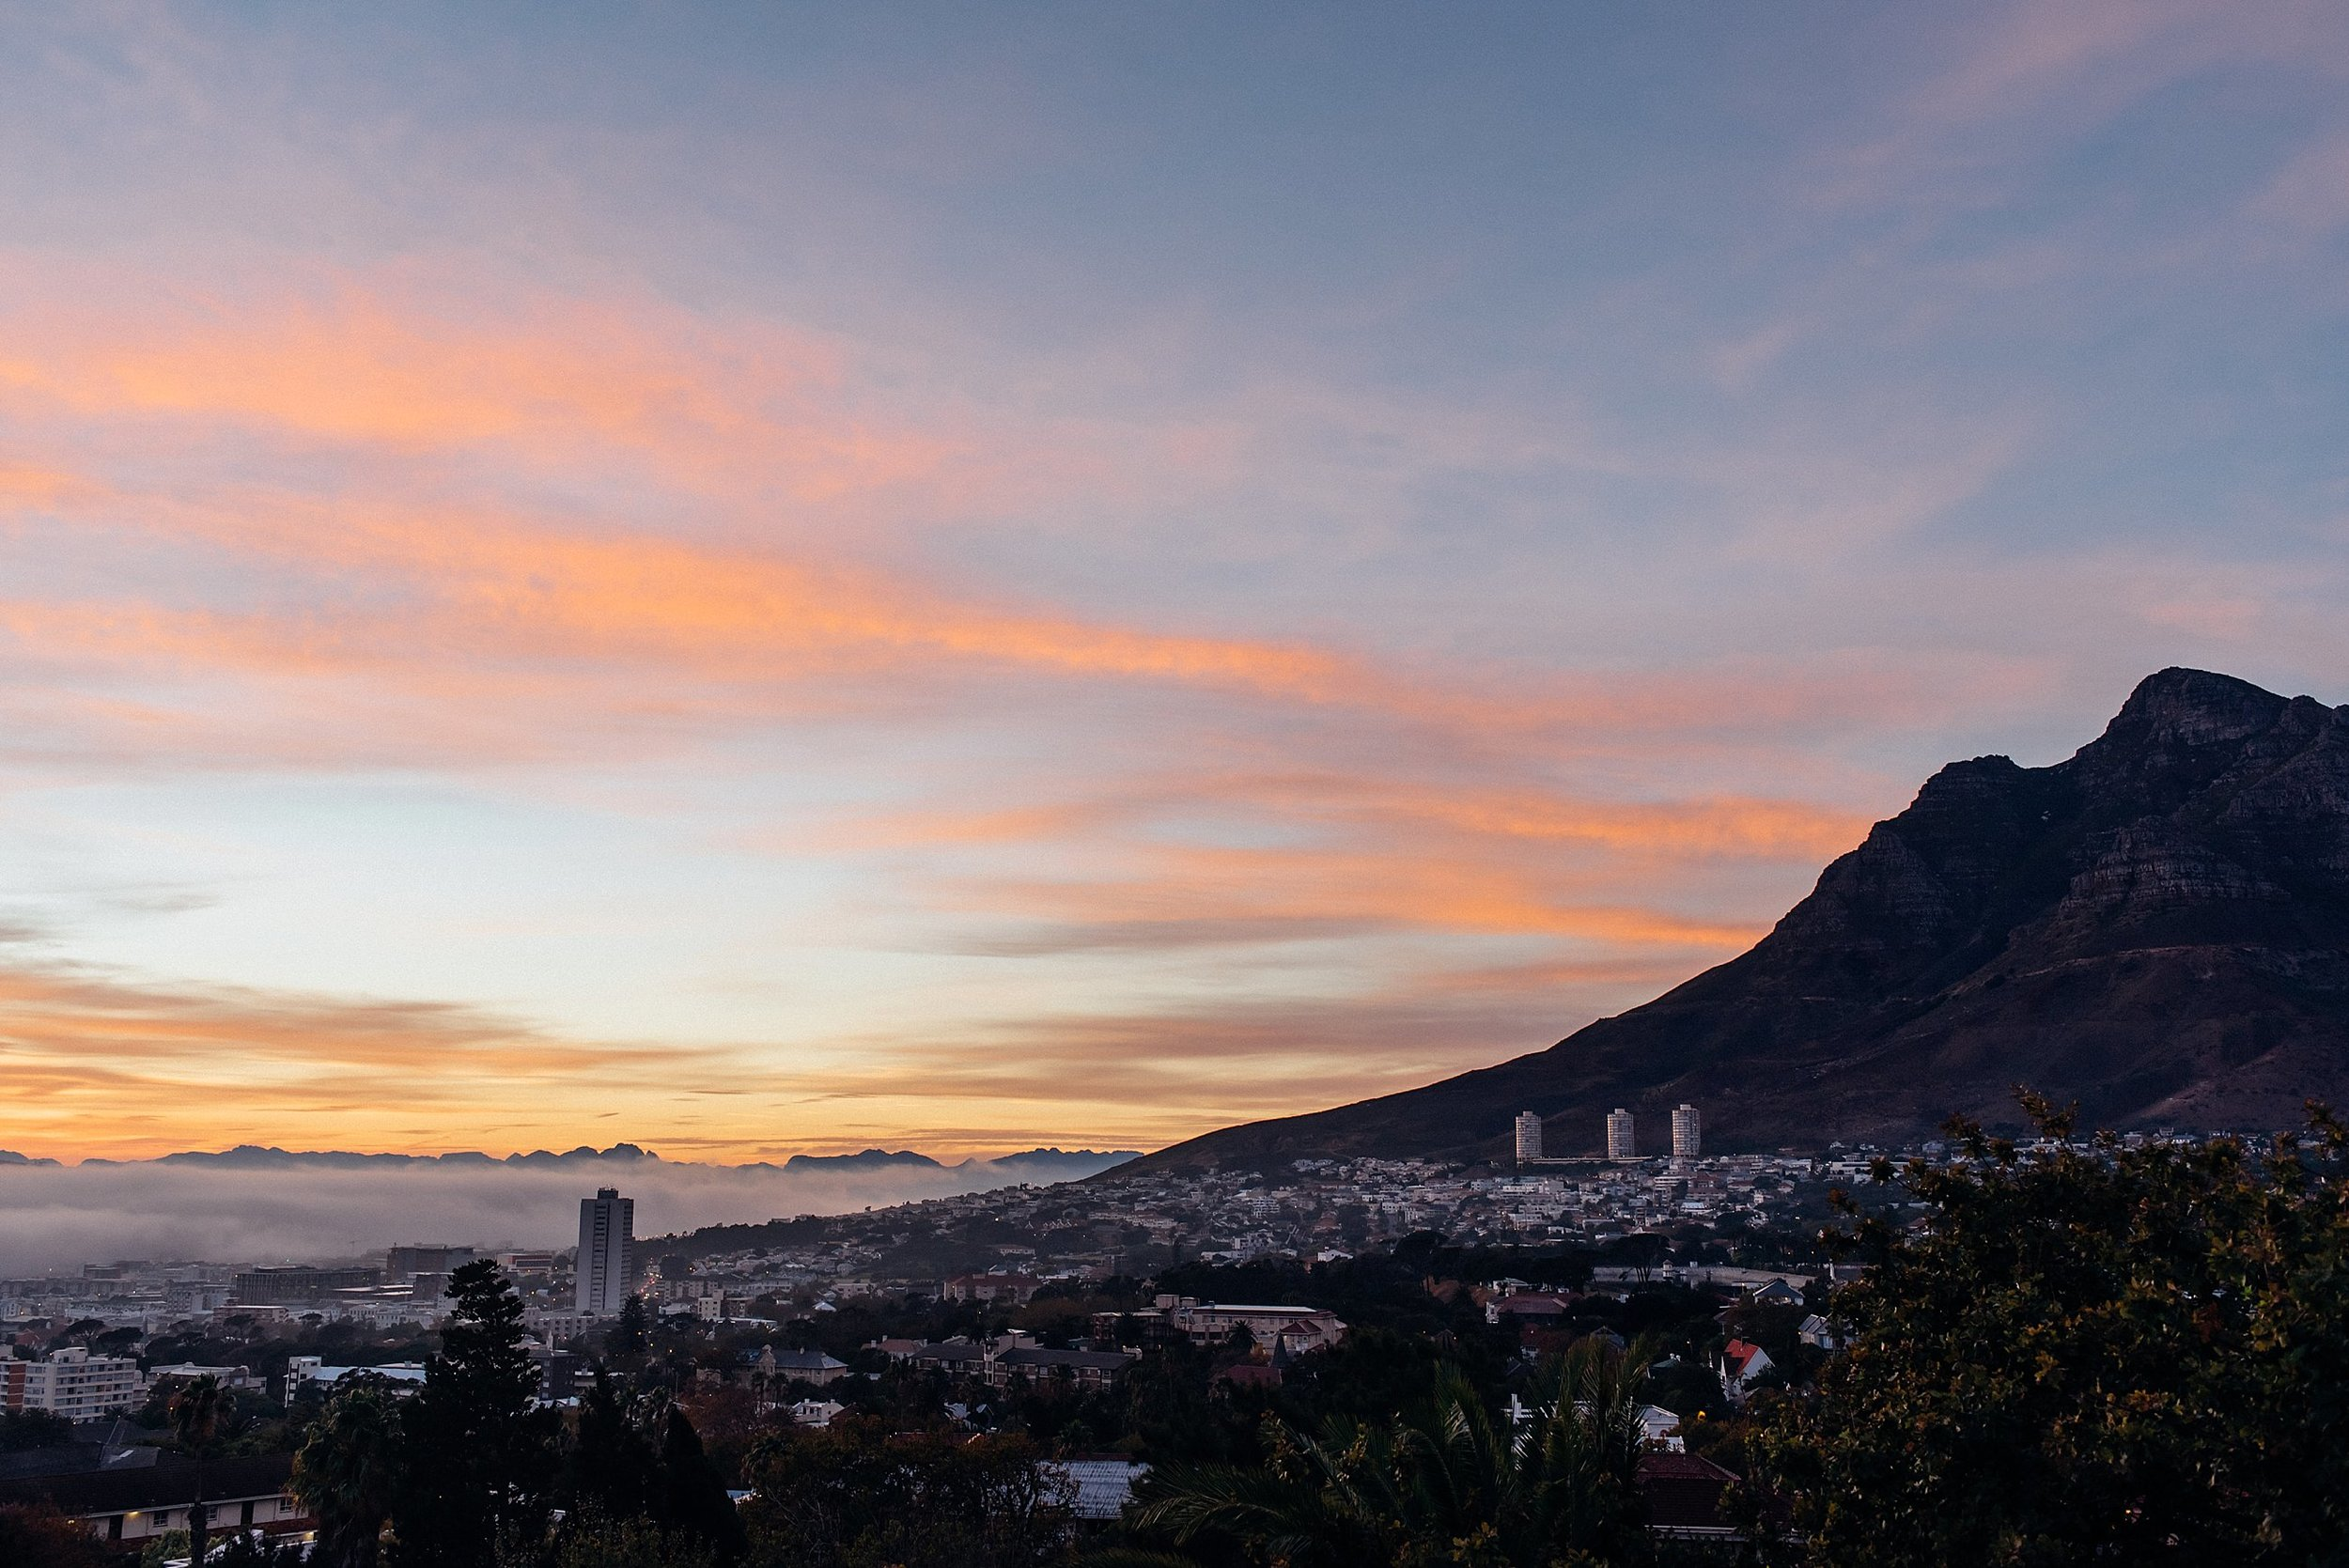 Our first morning in Cape Town was breathtaking. We always make it a point to get at least one sunrise and sunset in for every trip we take.